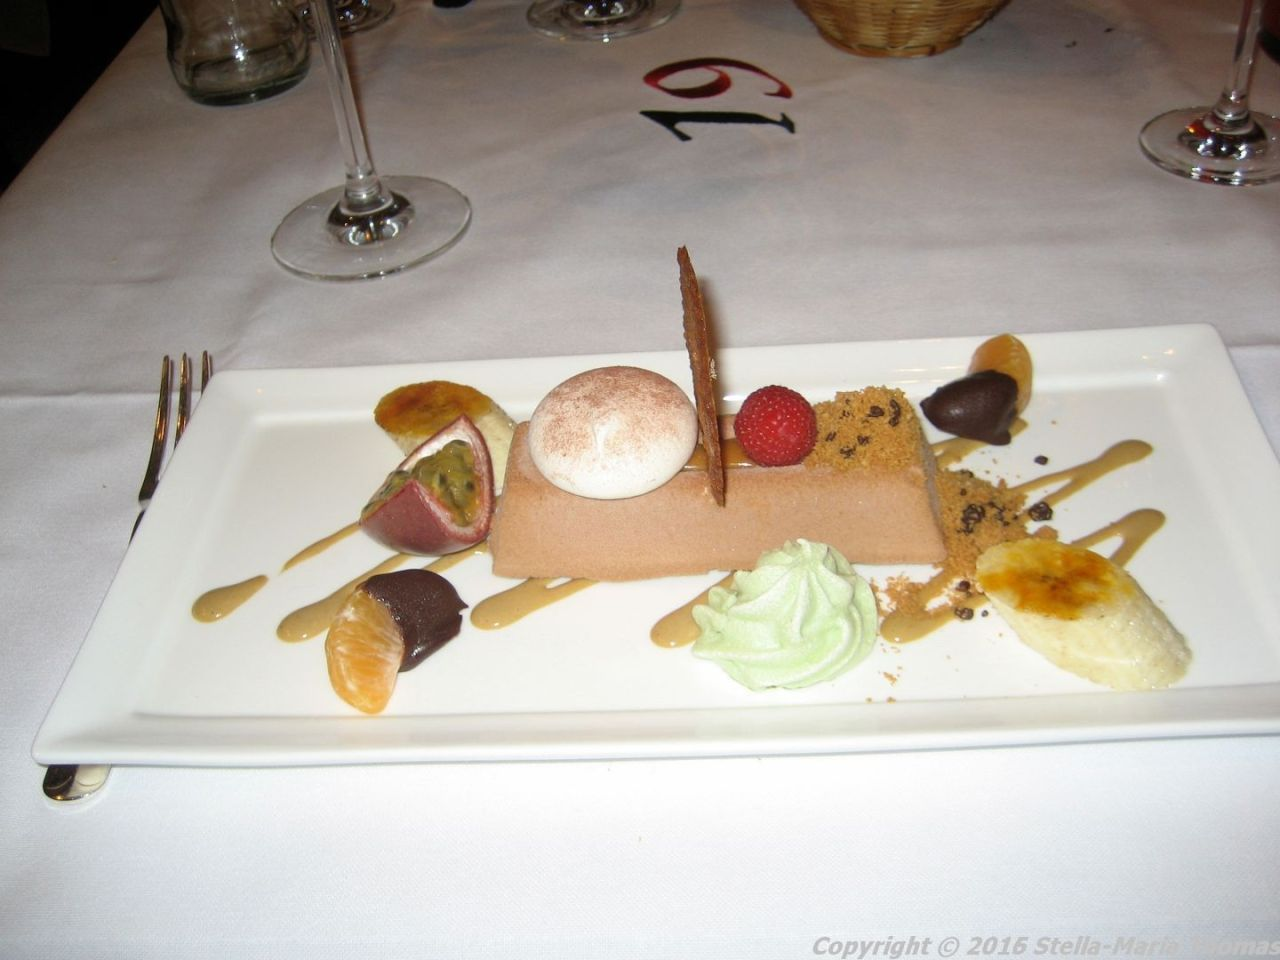 de-florentijnen-chocolate-tartufo-cookie-powder-almond-biscuits-pistachio-meringue-011_23687327772_o